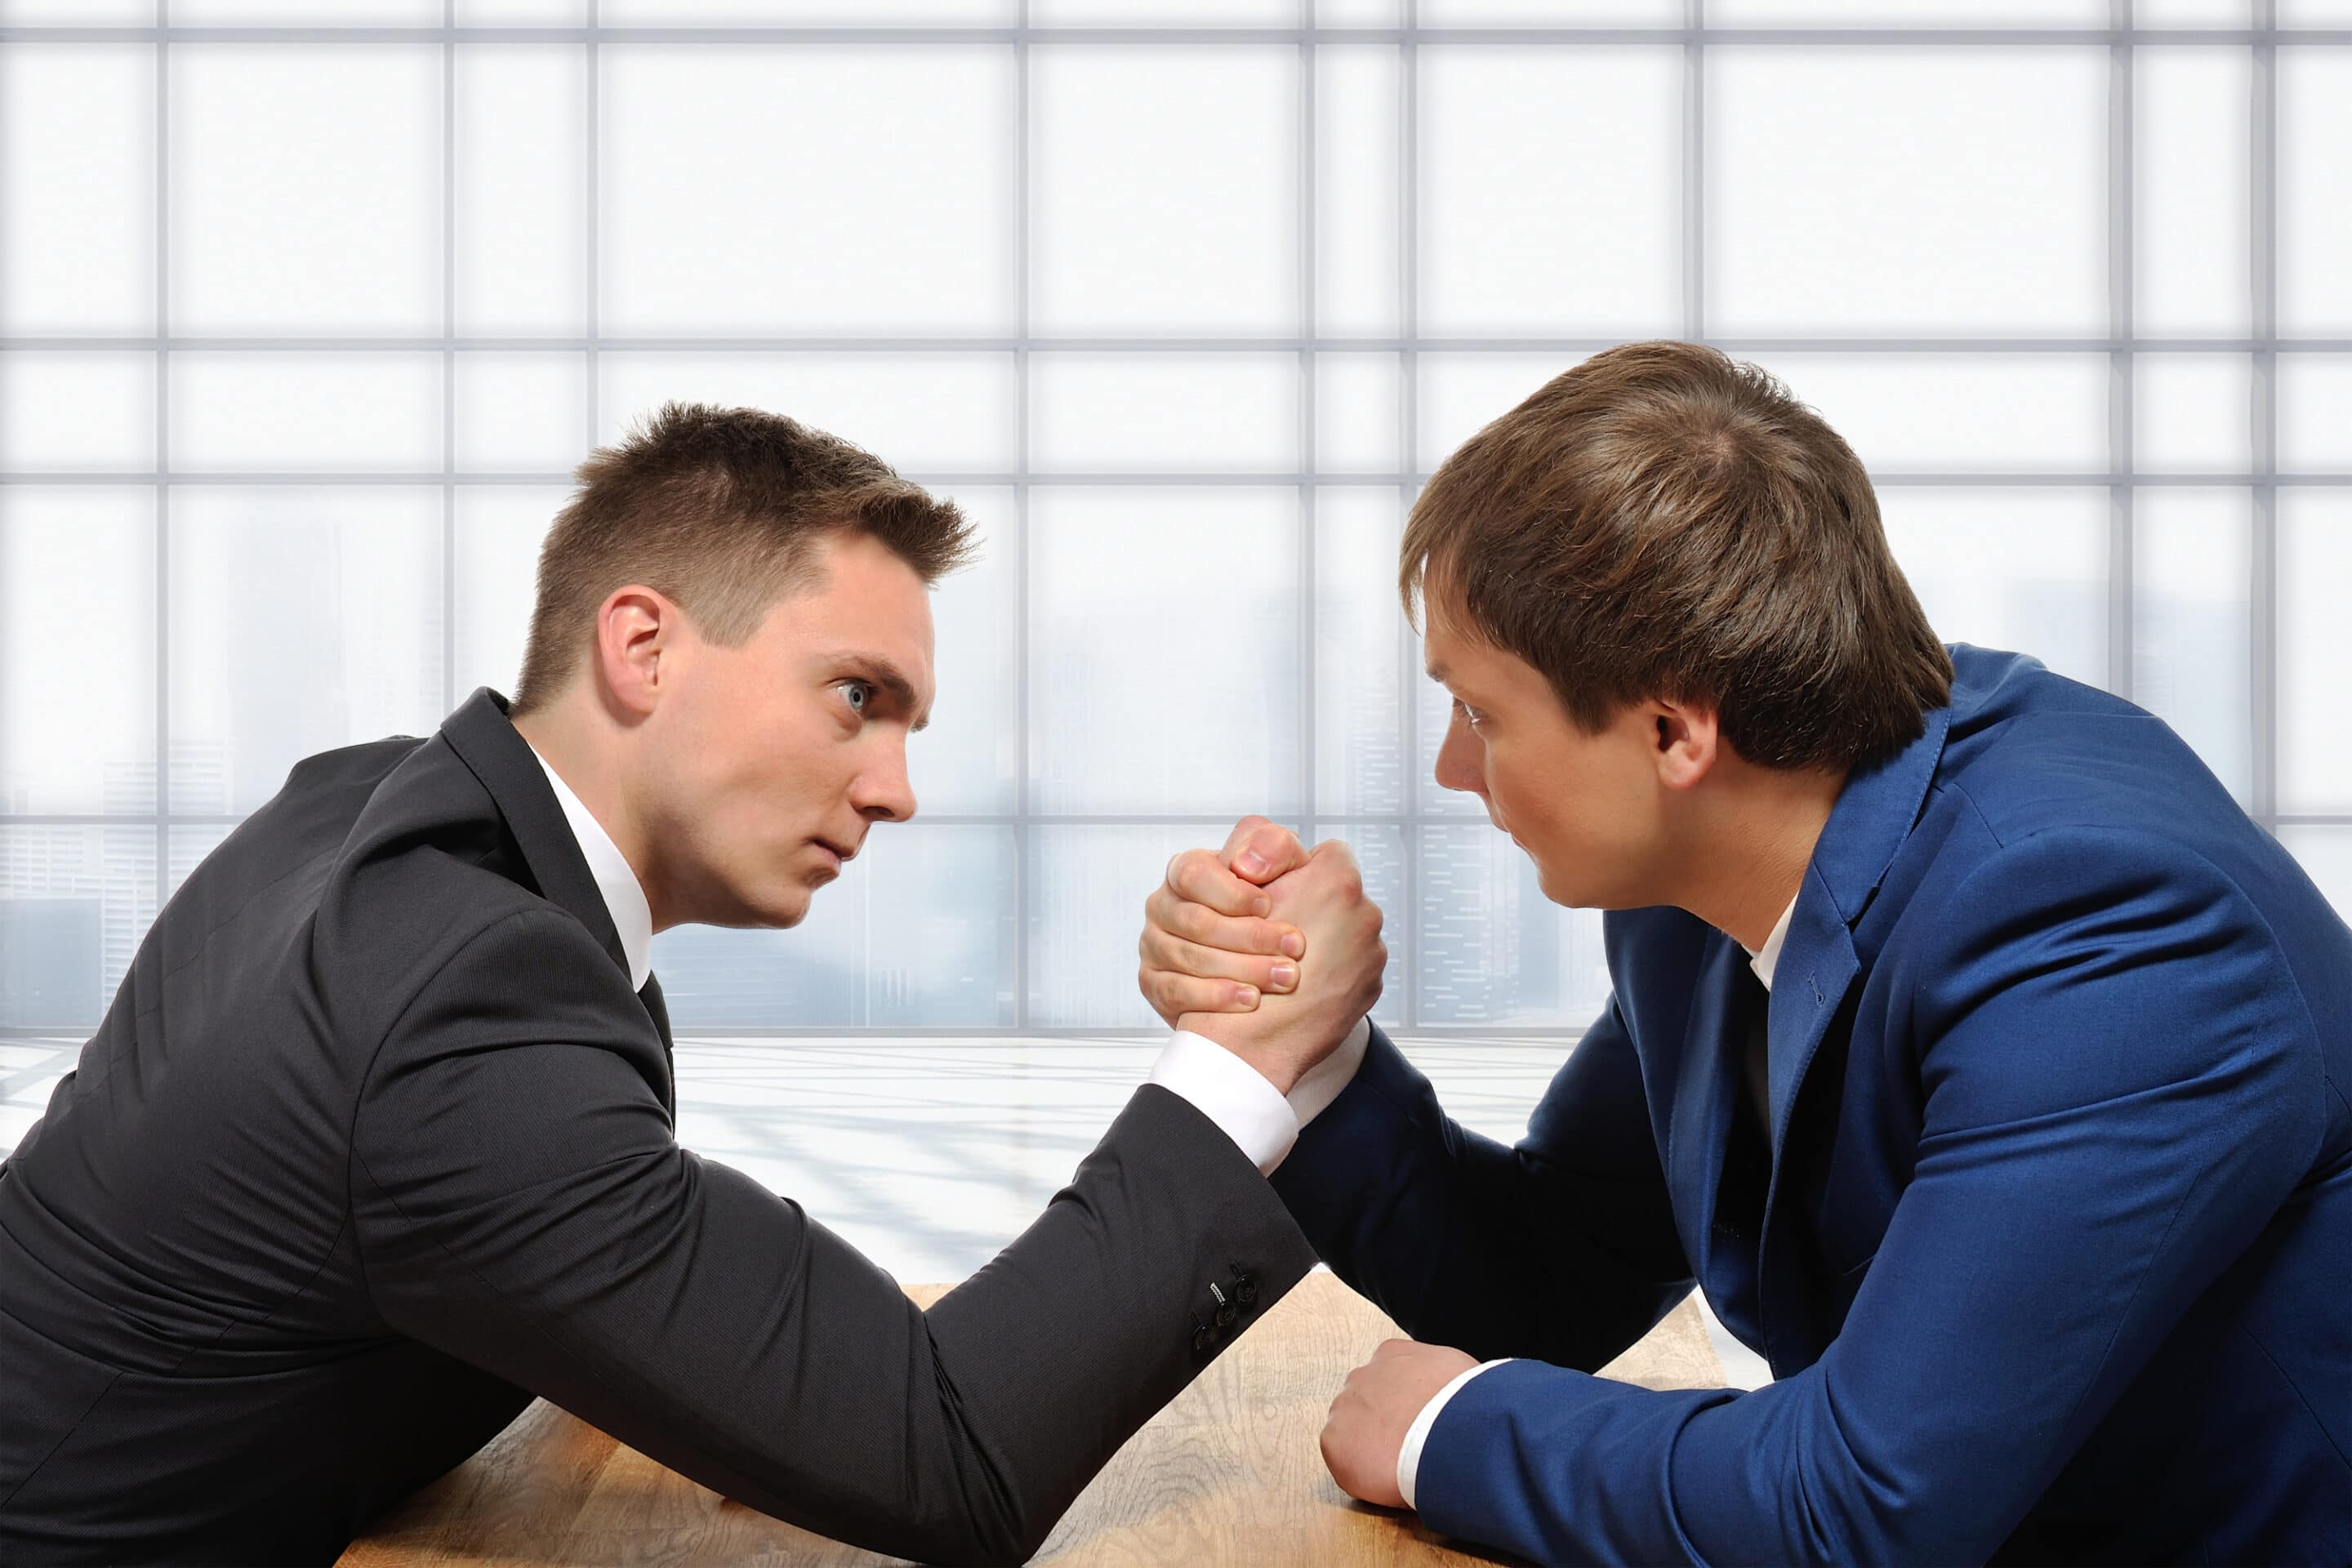 7 Ways to Resolve Conflicts